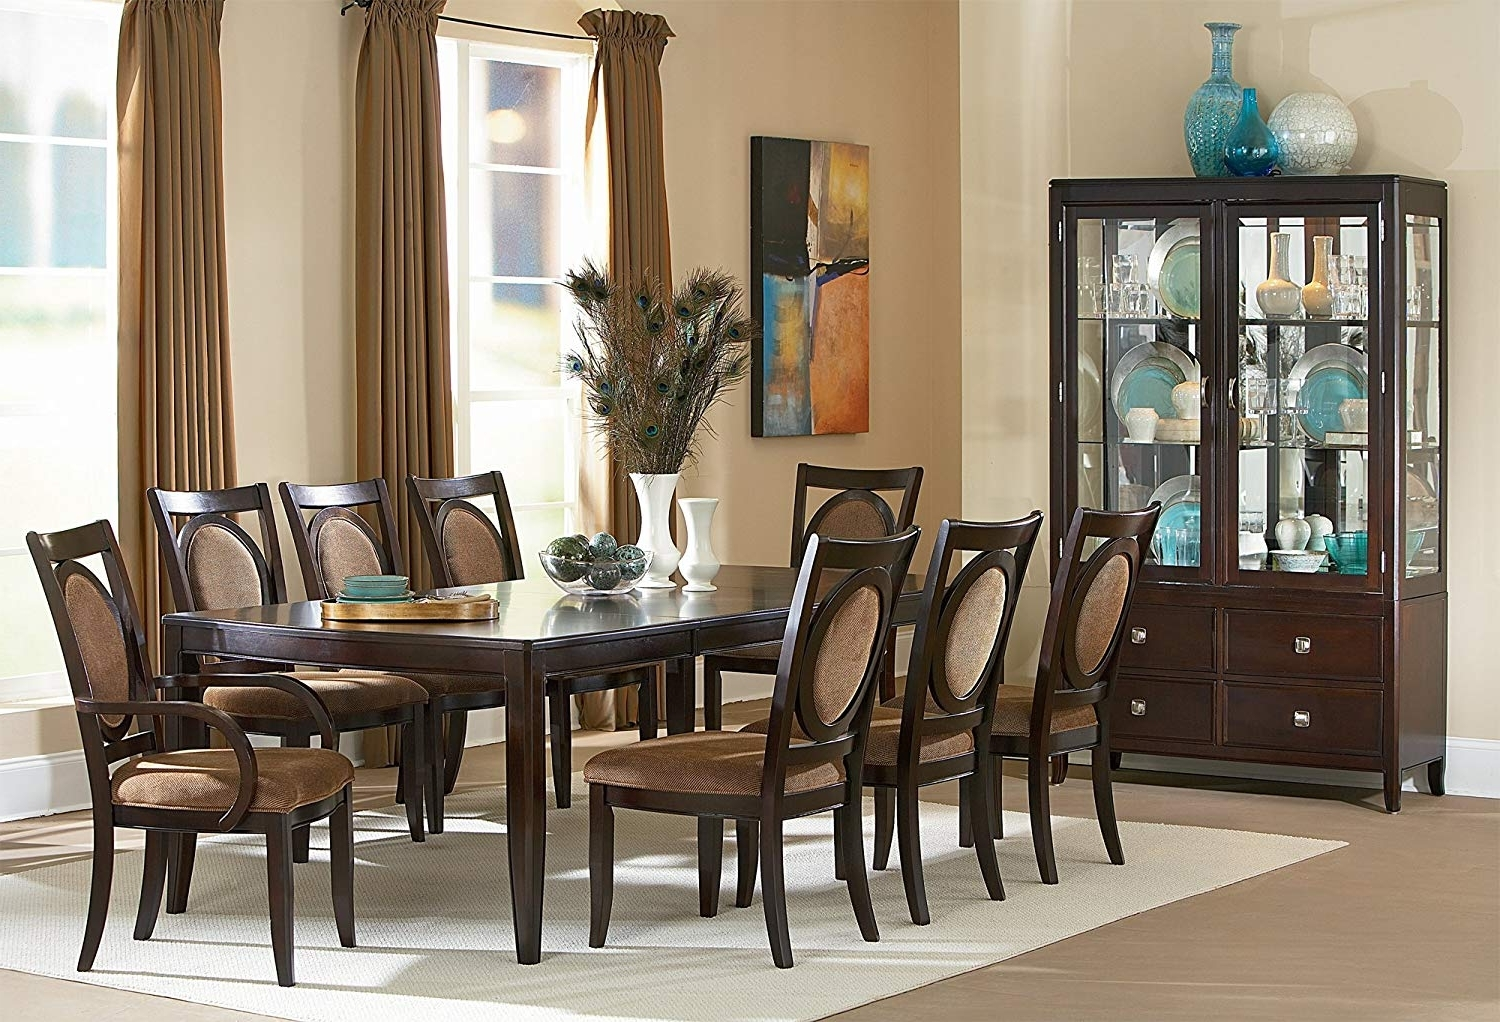 Dining Tables With 8 Chairs Within Most Popular Amazon – Steve Silver Company Montblanc Table With Two 18 (Gallery 3 of 25)